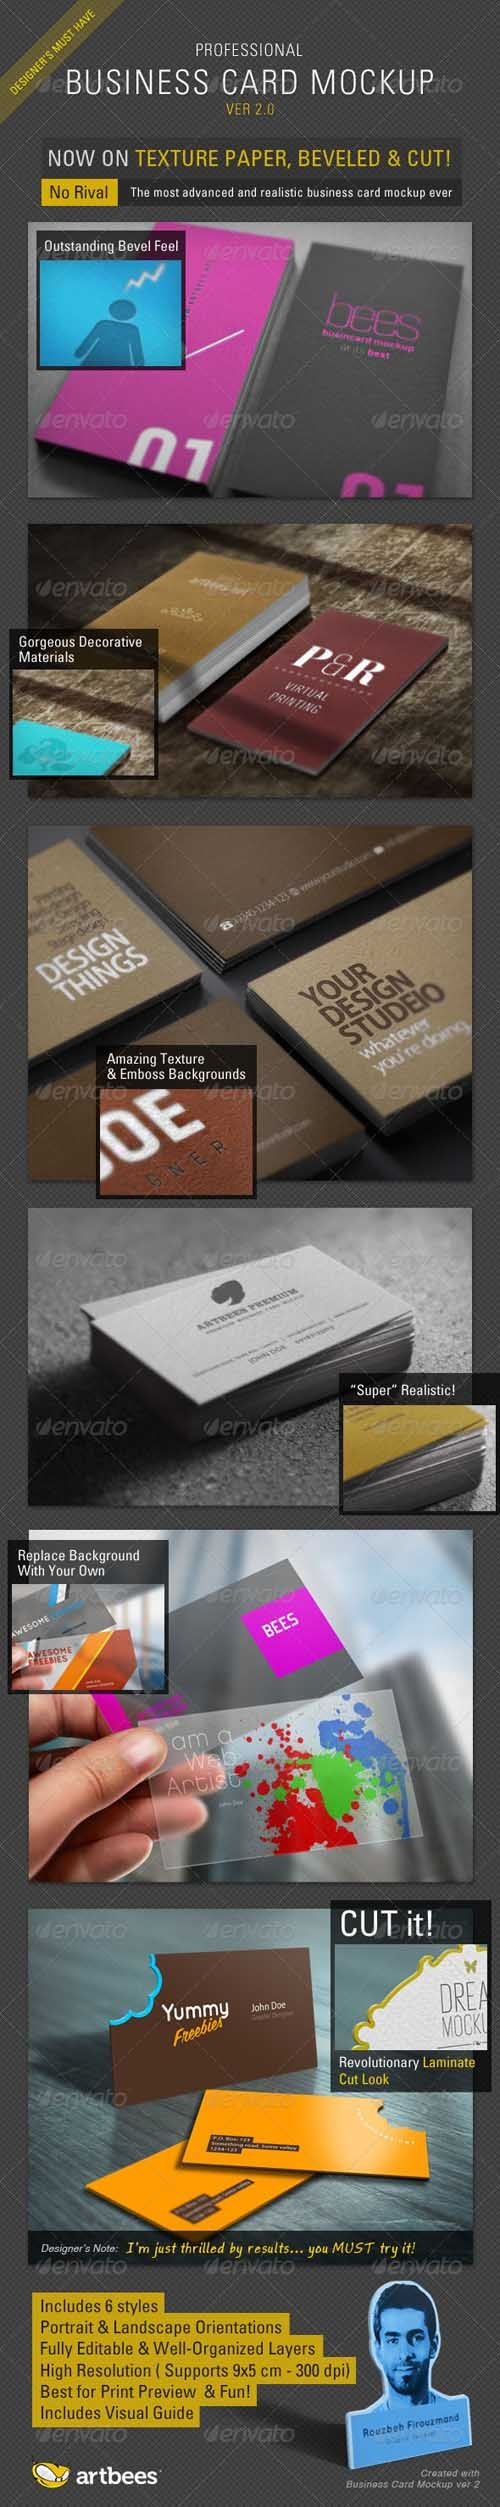 22 best Business Cards images on Pinterest   Business card ...